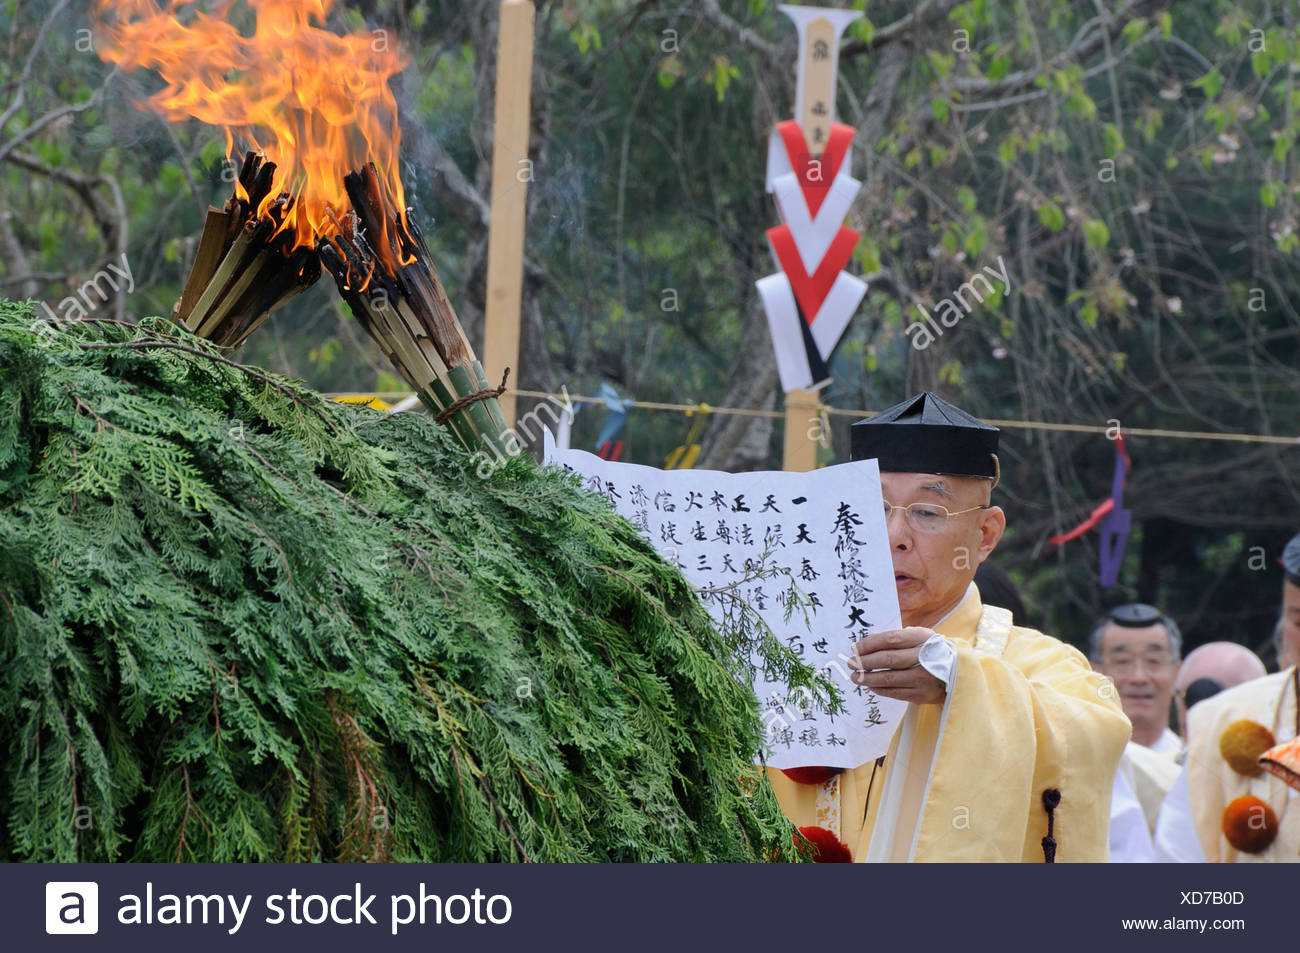 A Yamabushi master of ceremonies preaches in front of the fire mound and the ready lit torches, Kyoto, Japan, Asia - Stock Image